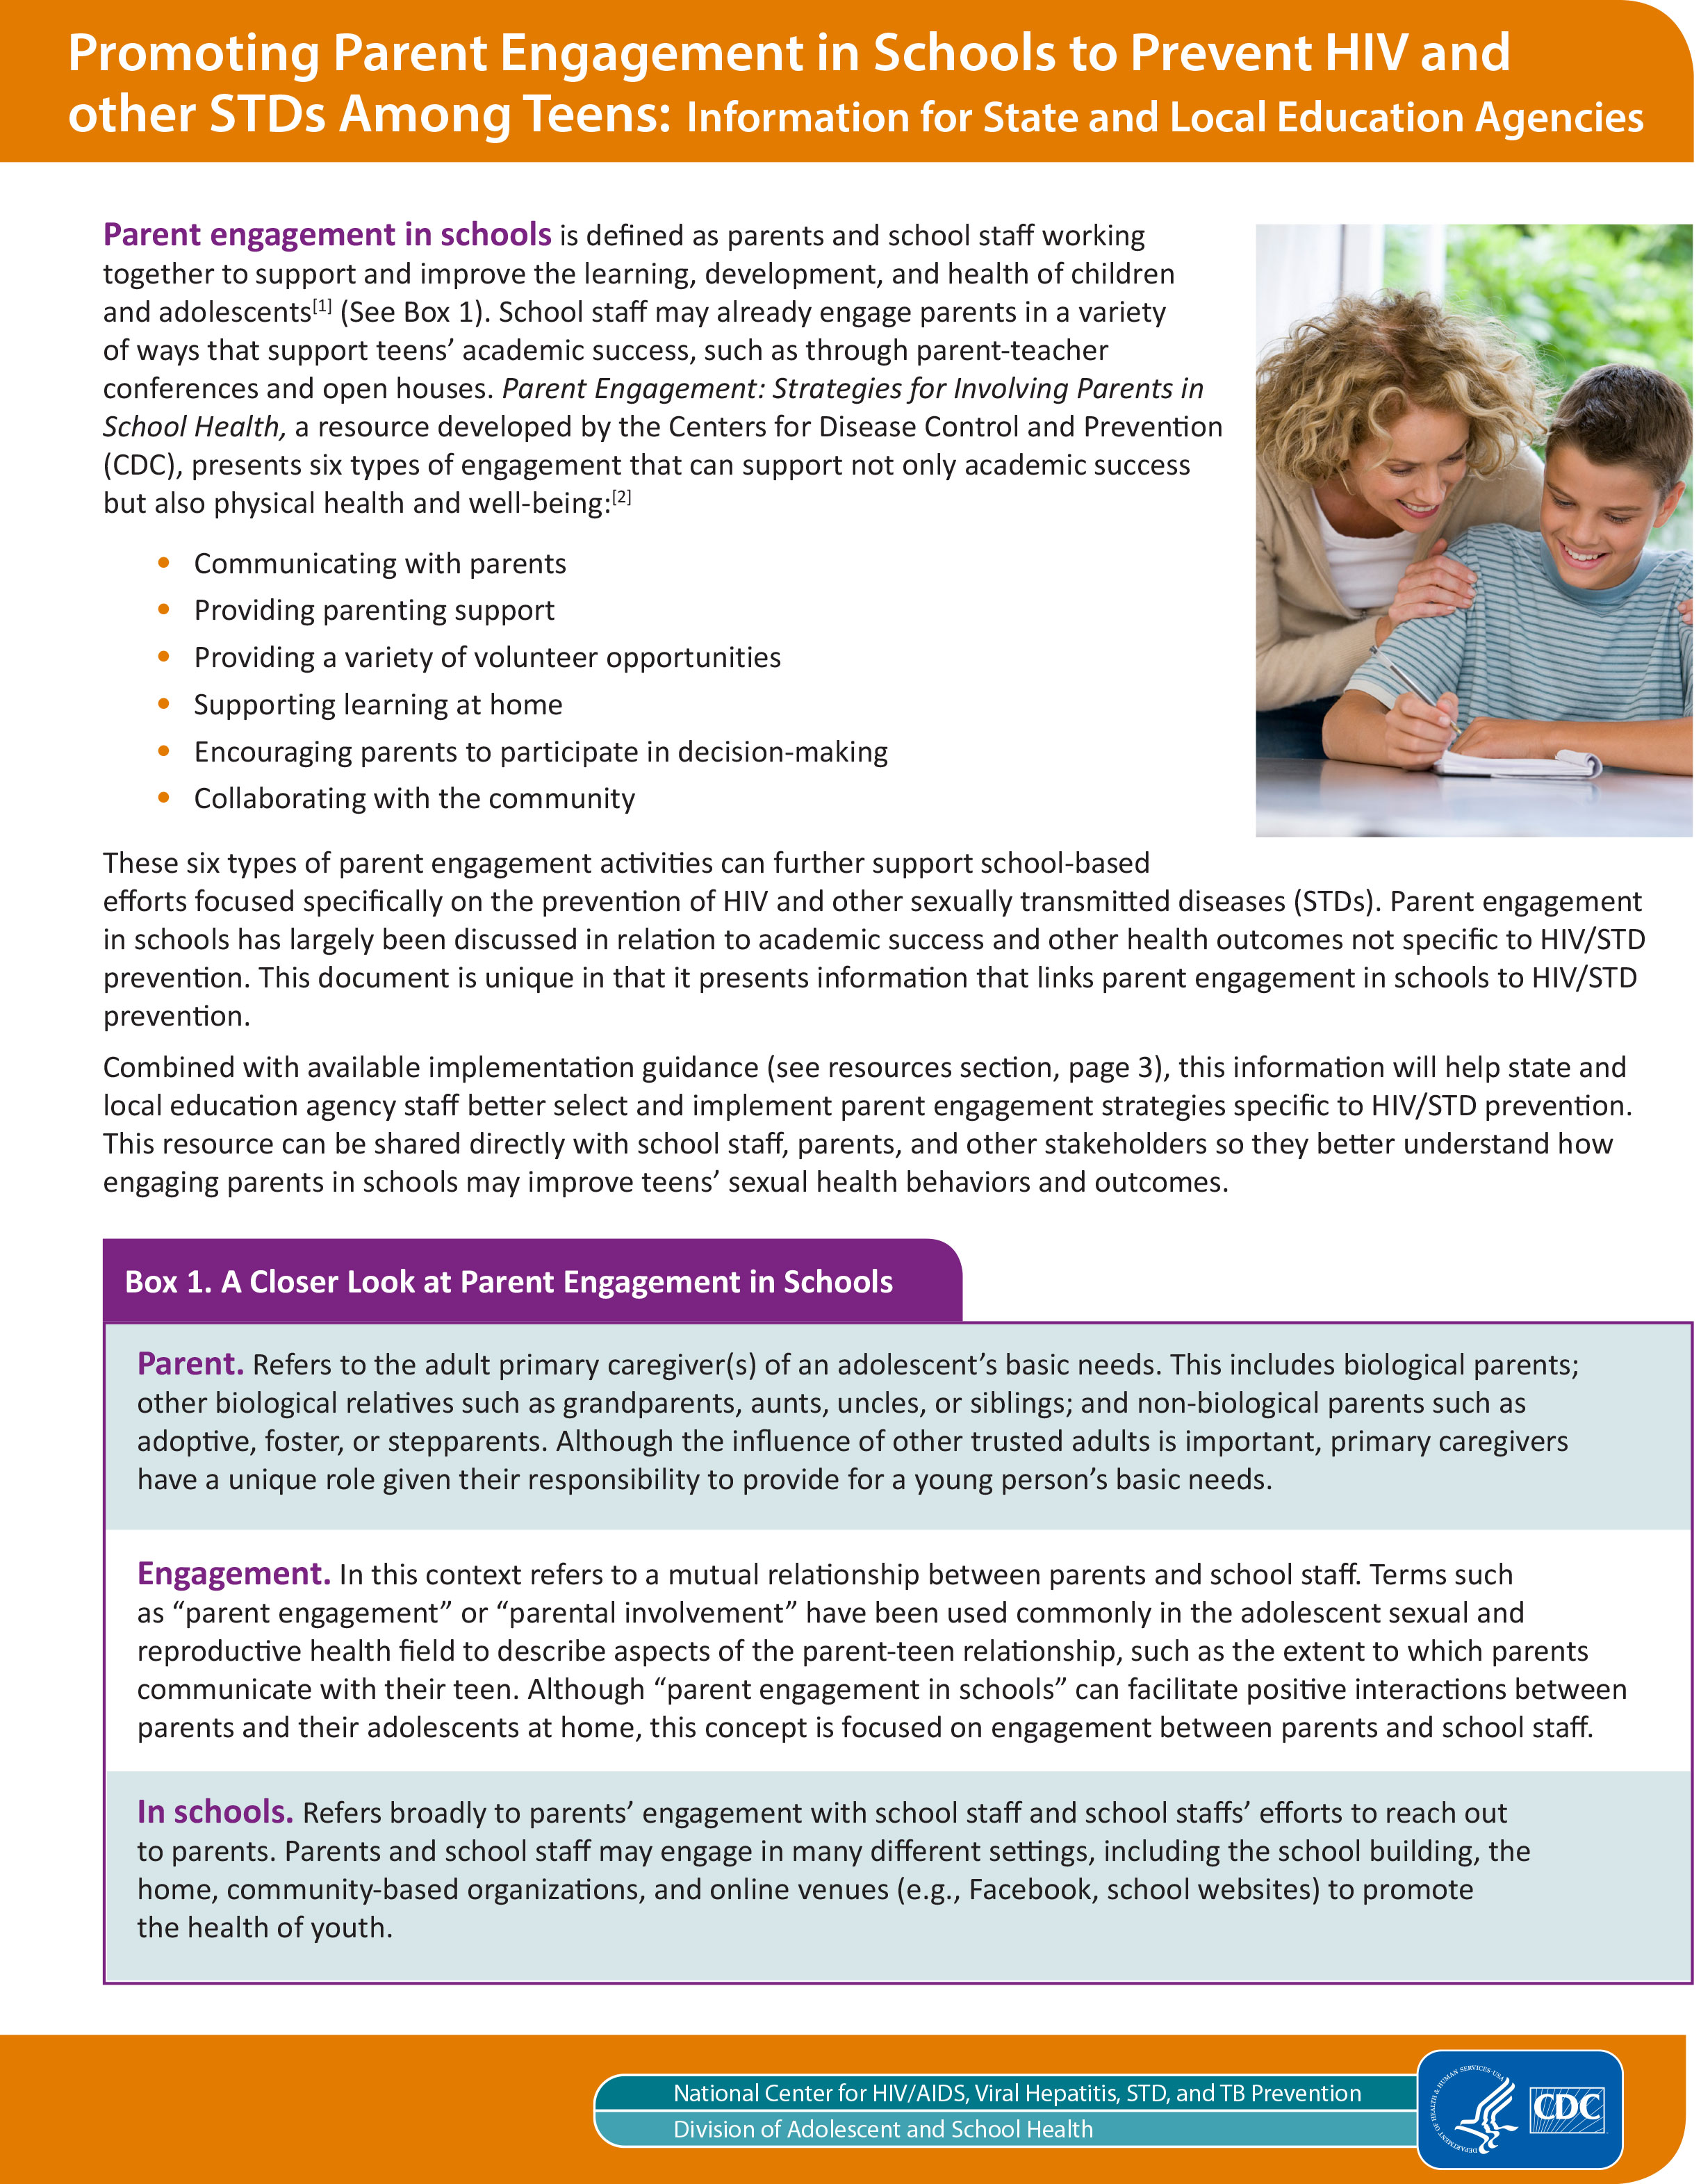 thumbnail image of promoting parent engagement in schools resource